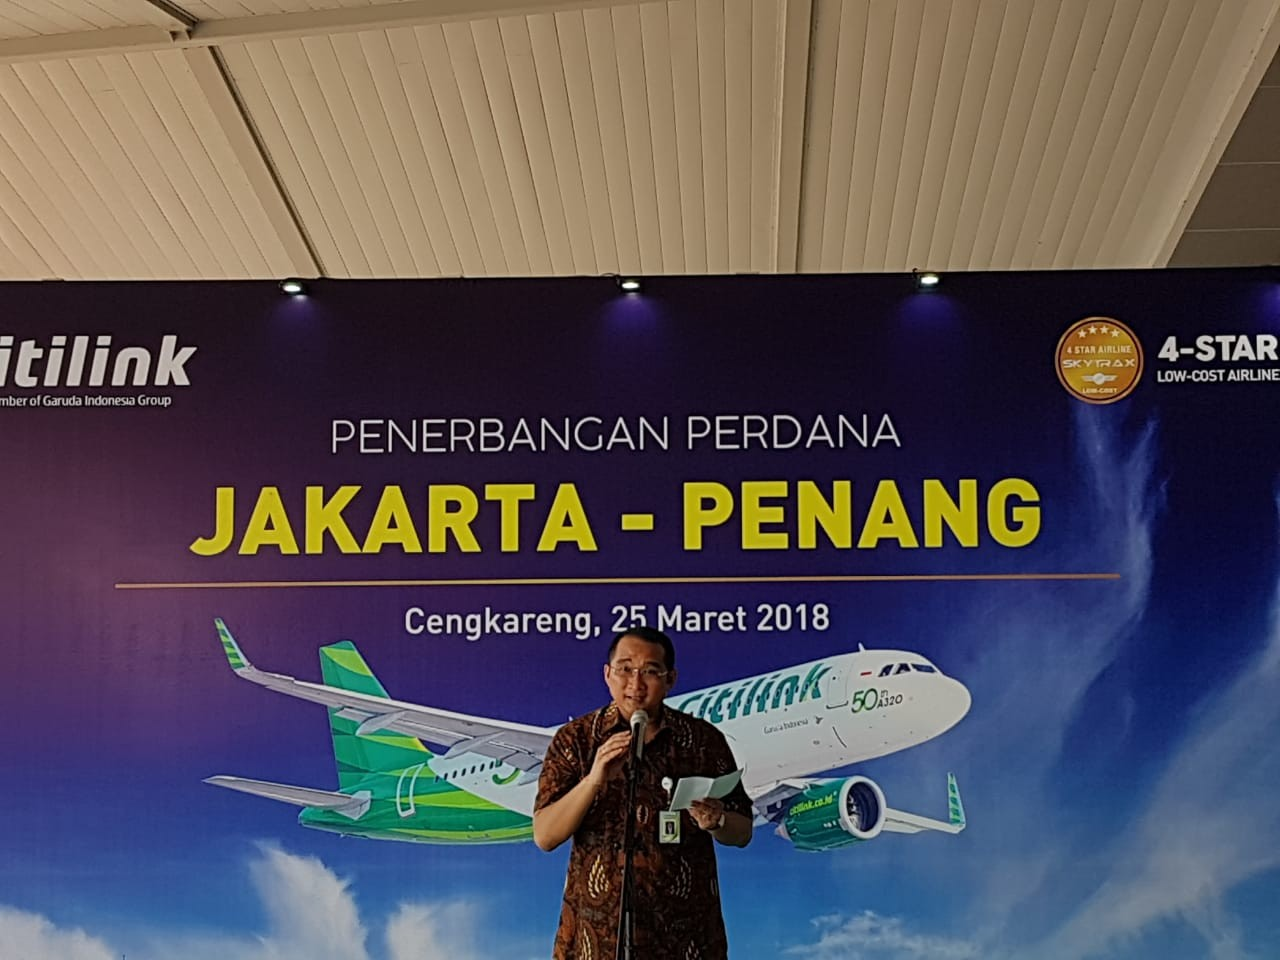 Citilink opens direct route from Jakarta to Penang